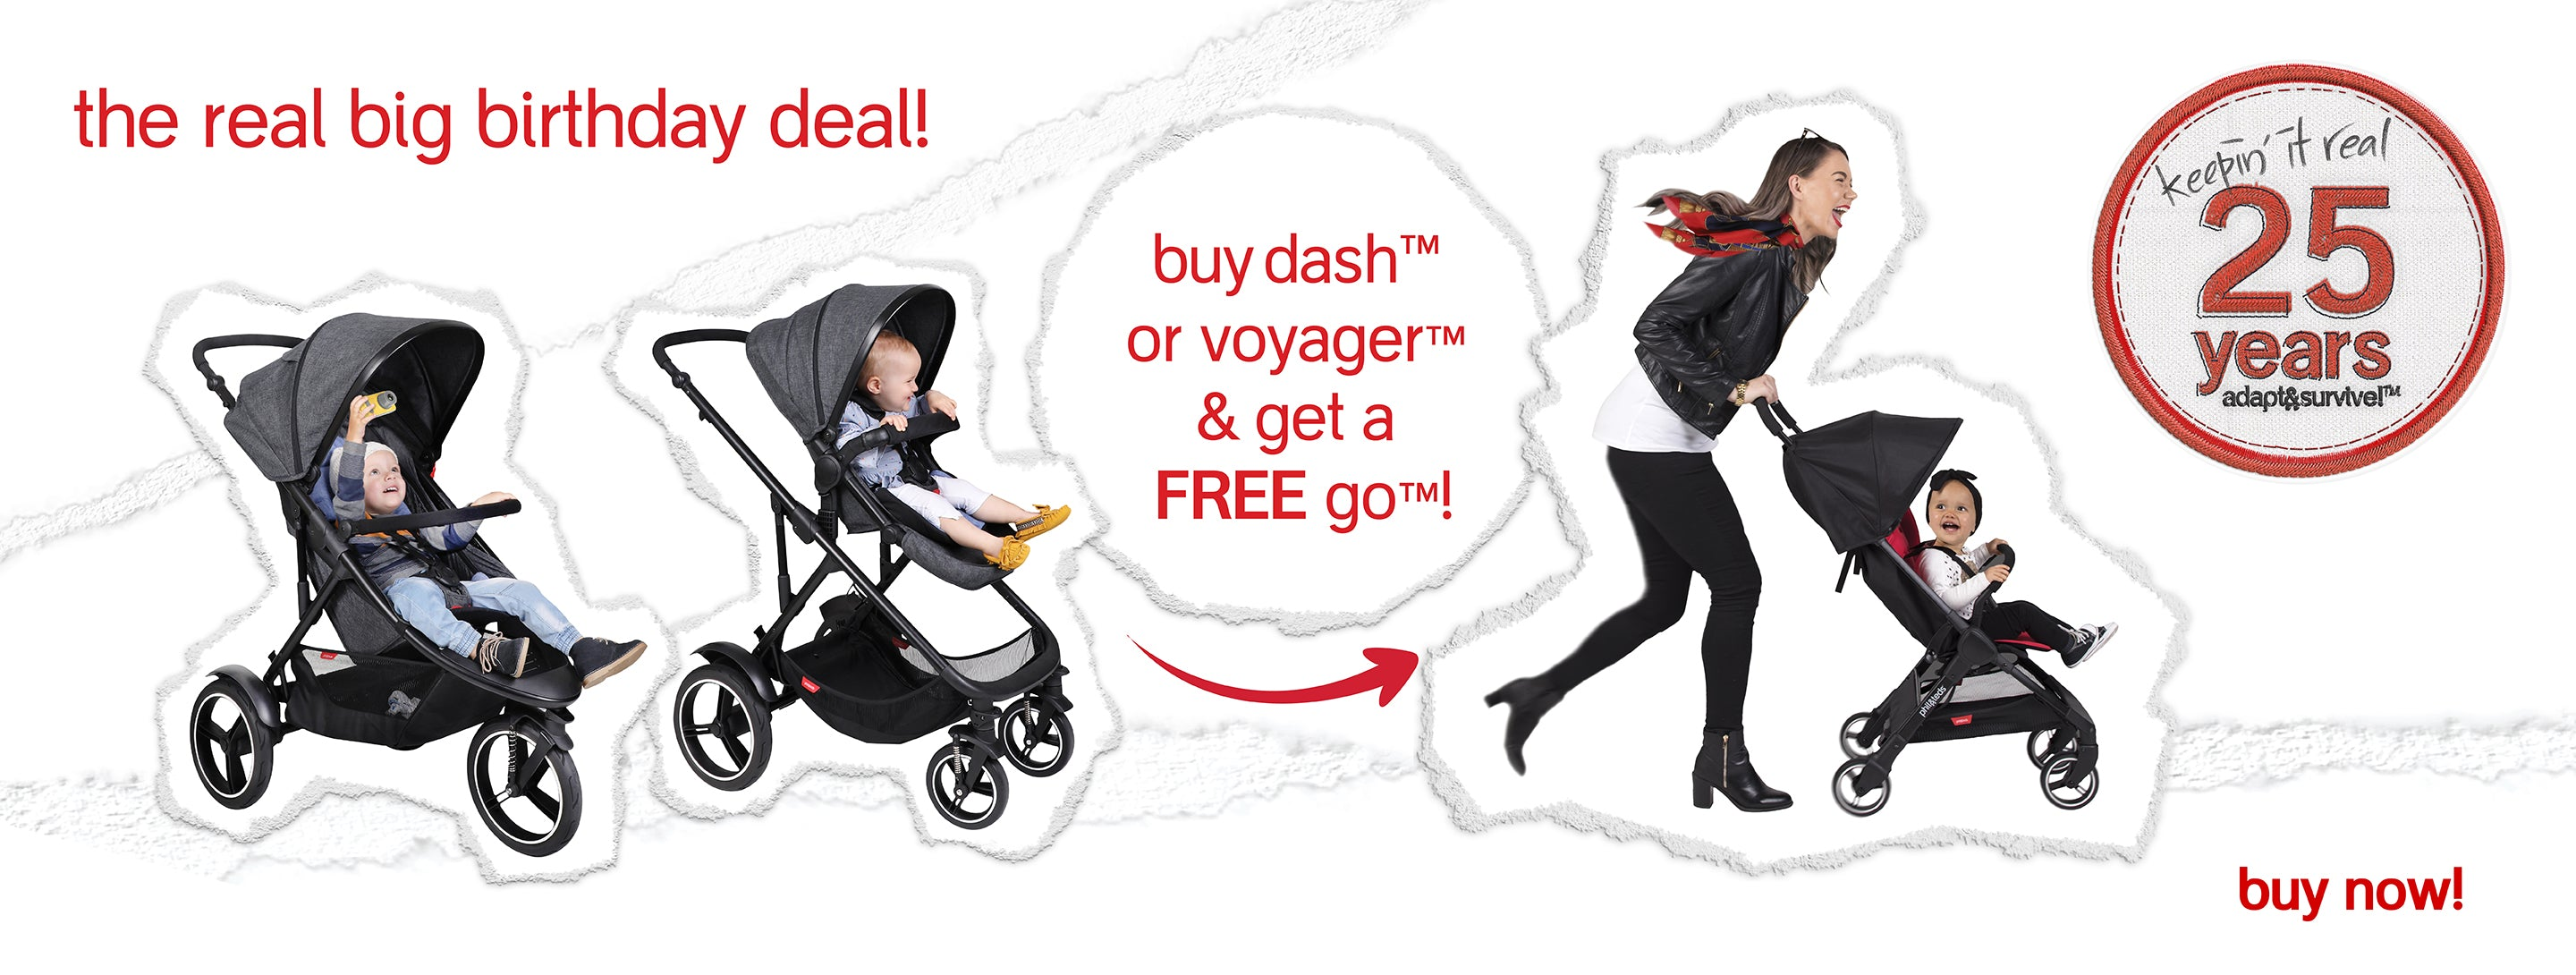 buy a dash or voyager inline buggy & get a free go buggy